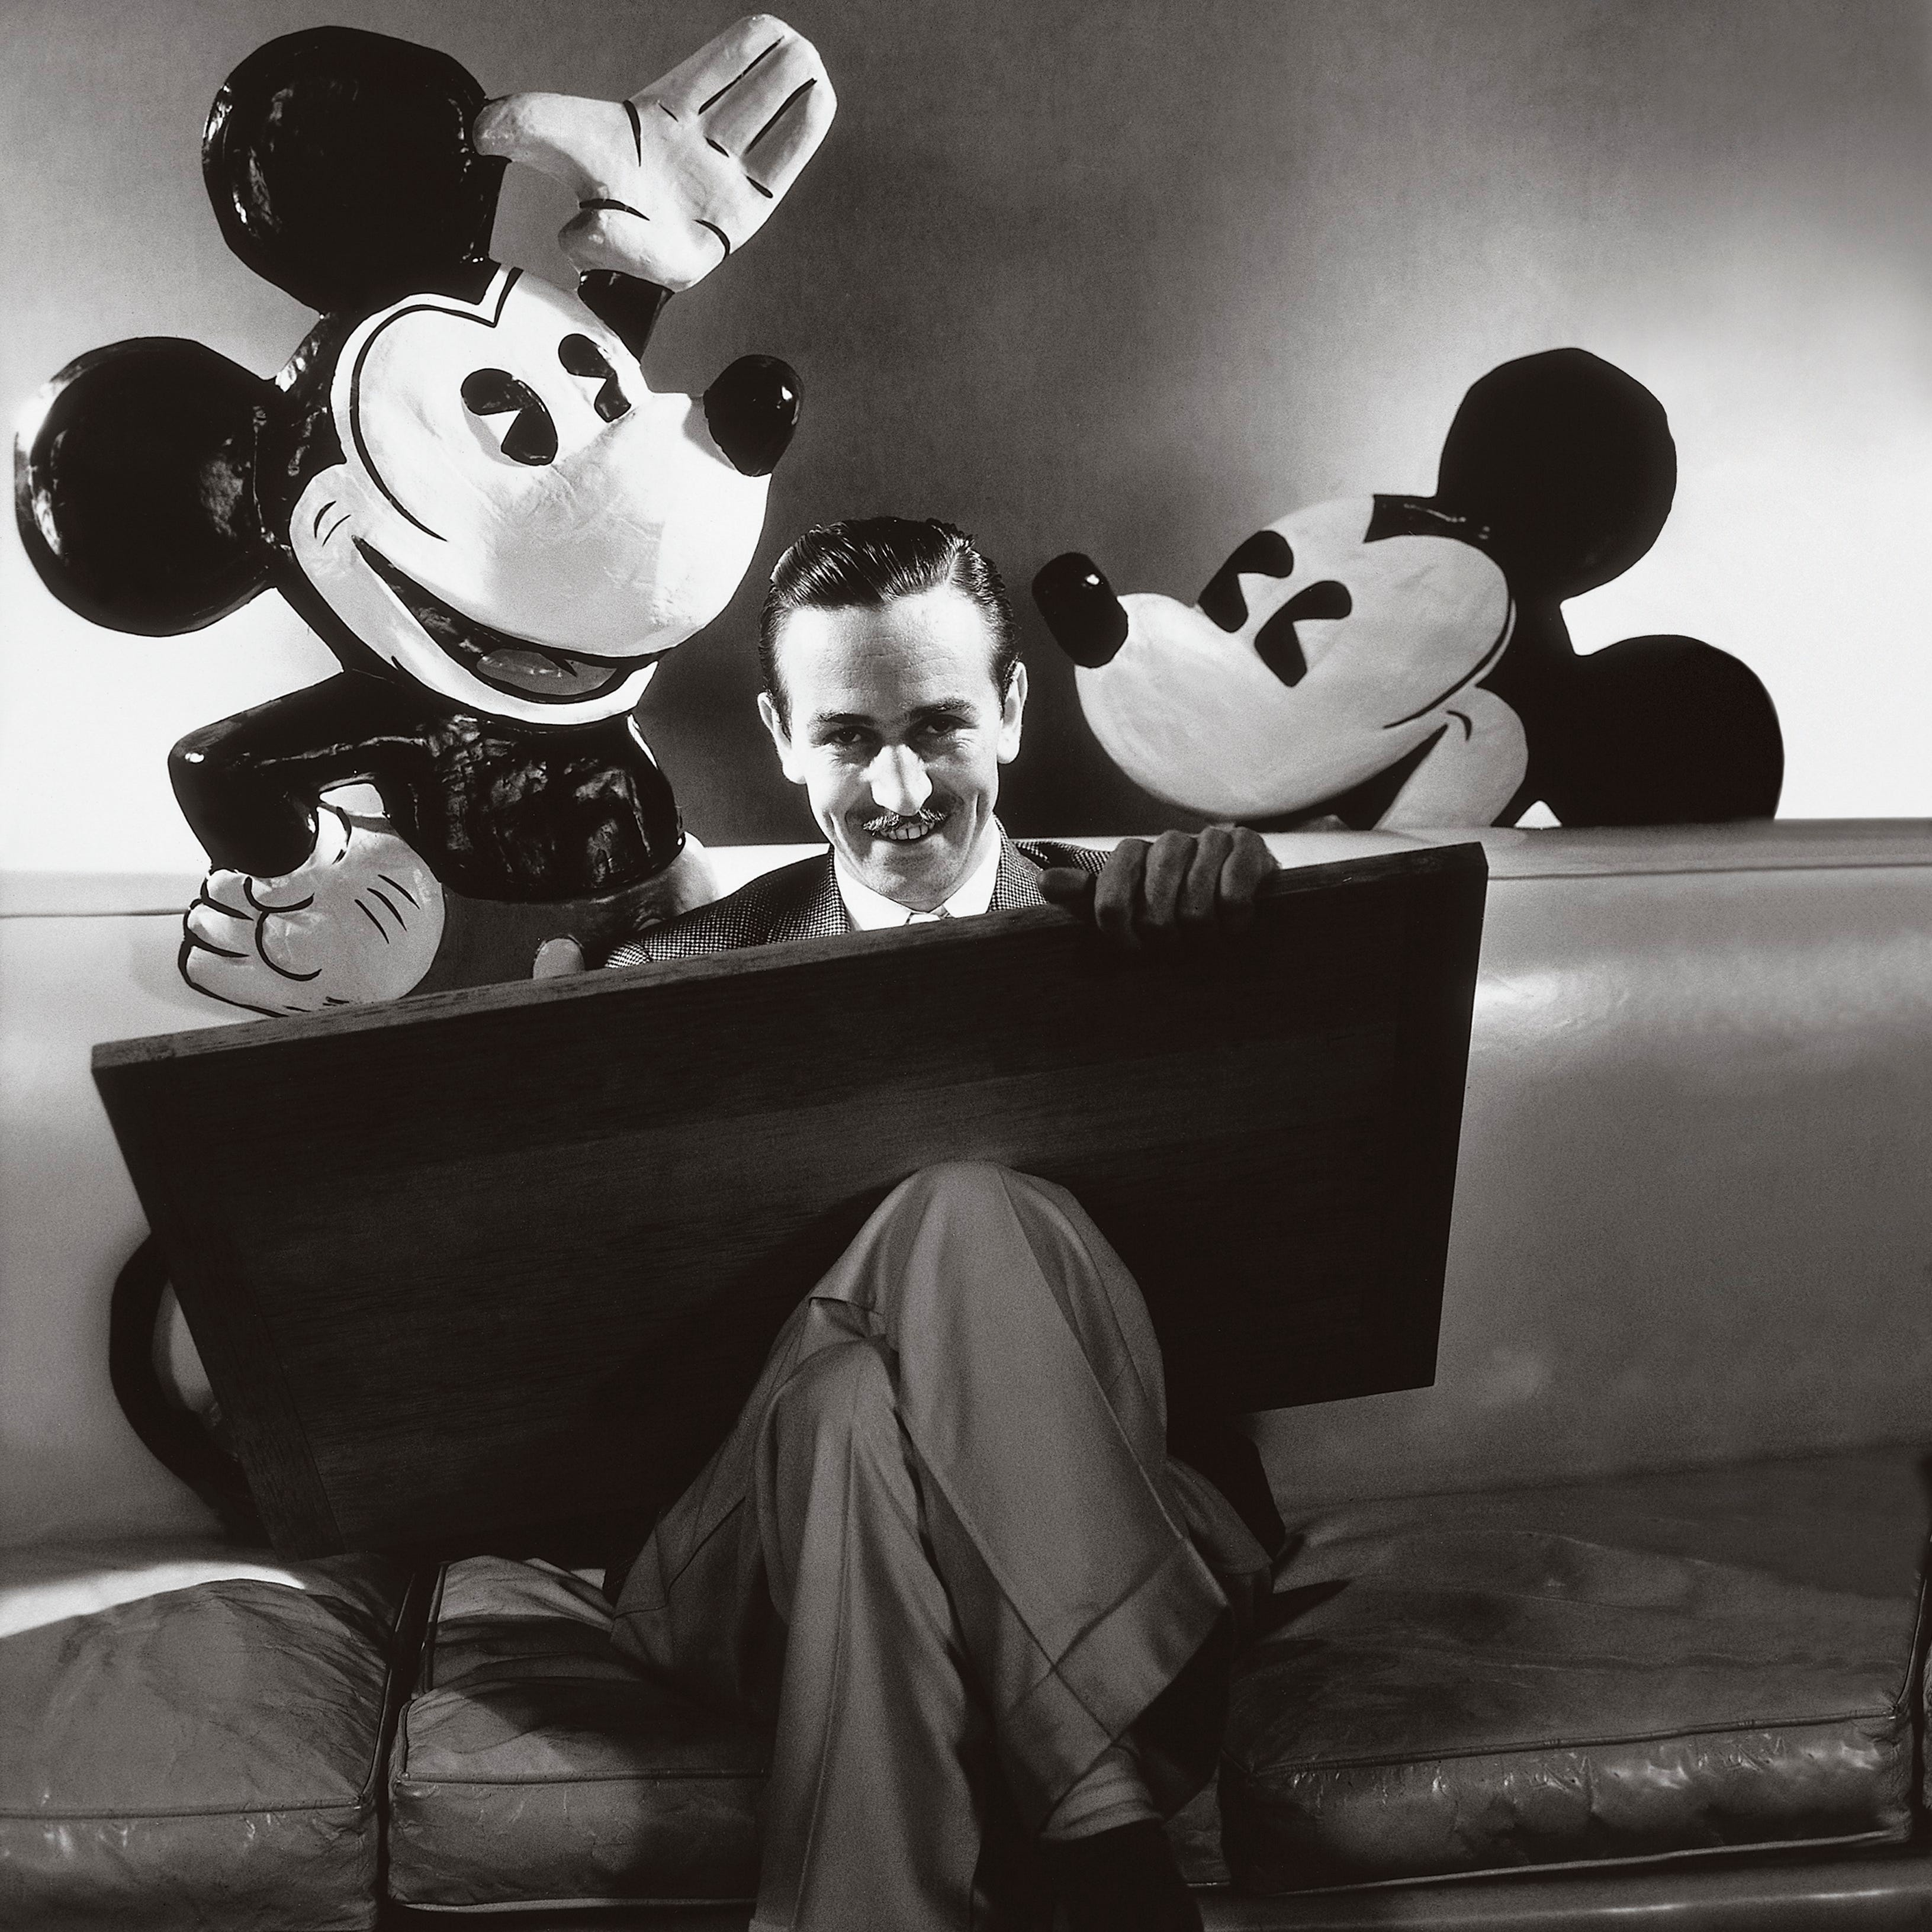 Walt Disney in October 1933 with a drawing board and flanked by representations of his creations, Mickey and Minnie Mouse. Disney's life was chronicled in a 'American Experience' documentary on PBS.